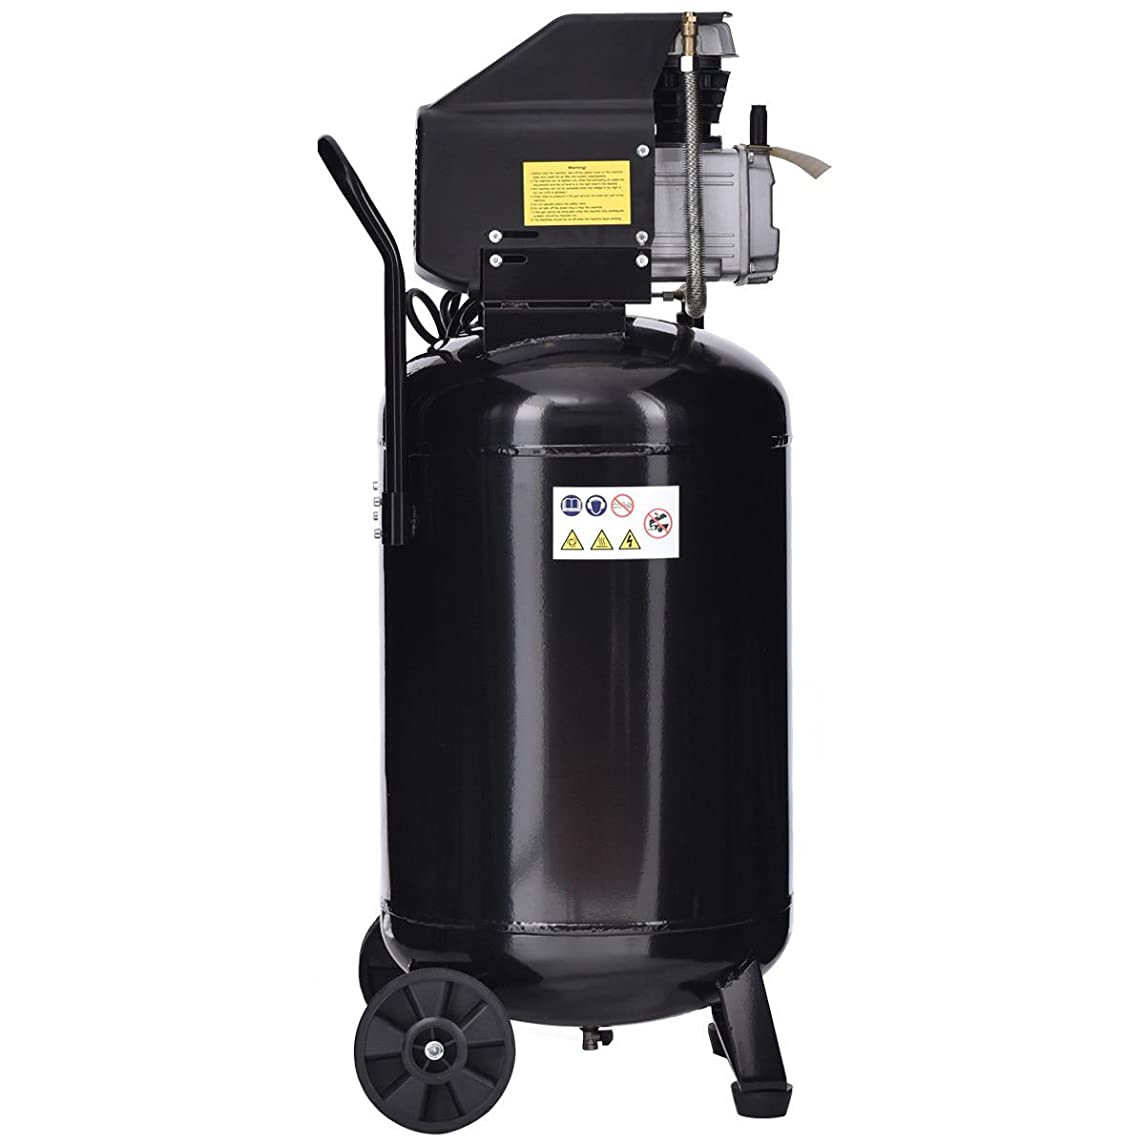 Cypressshop Portable Vertical Air Compressor 21 Gallon 125 PSI Cast Iron 2.5HP Motor Used in Machinery Chemical Industry Spray Decoration Automatic Control Workshop